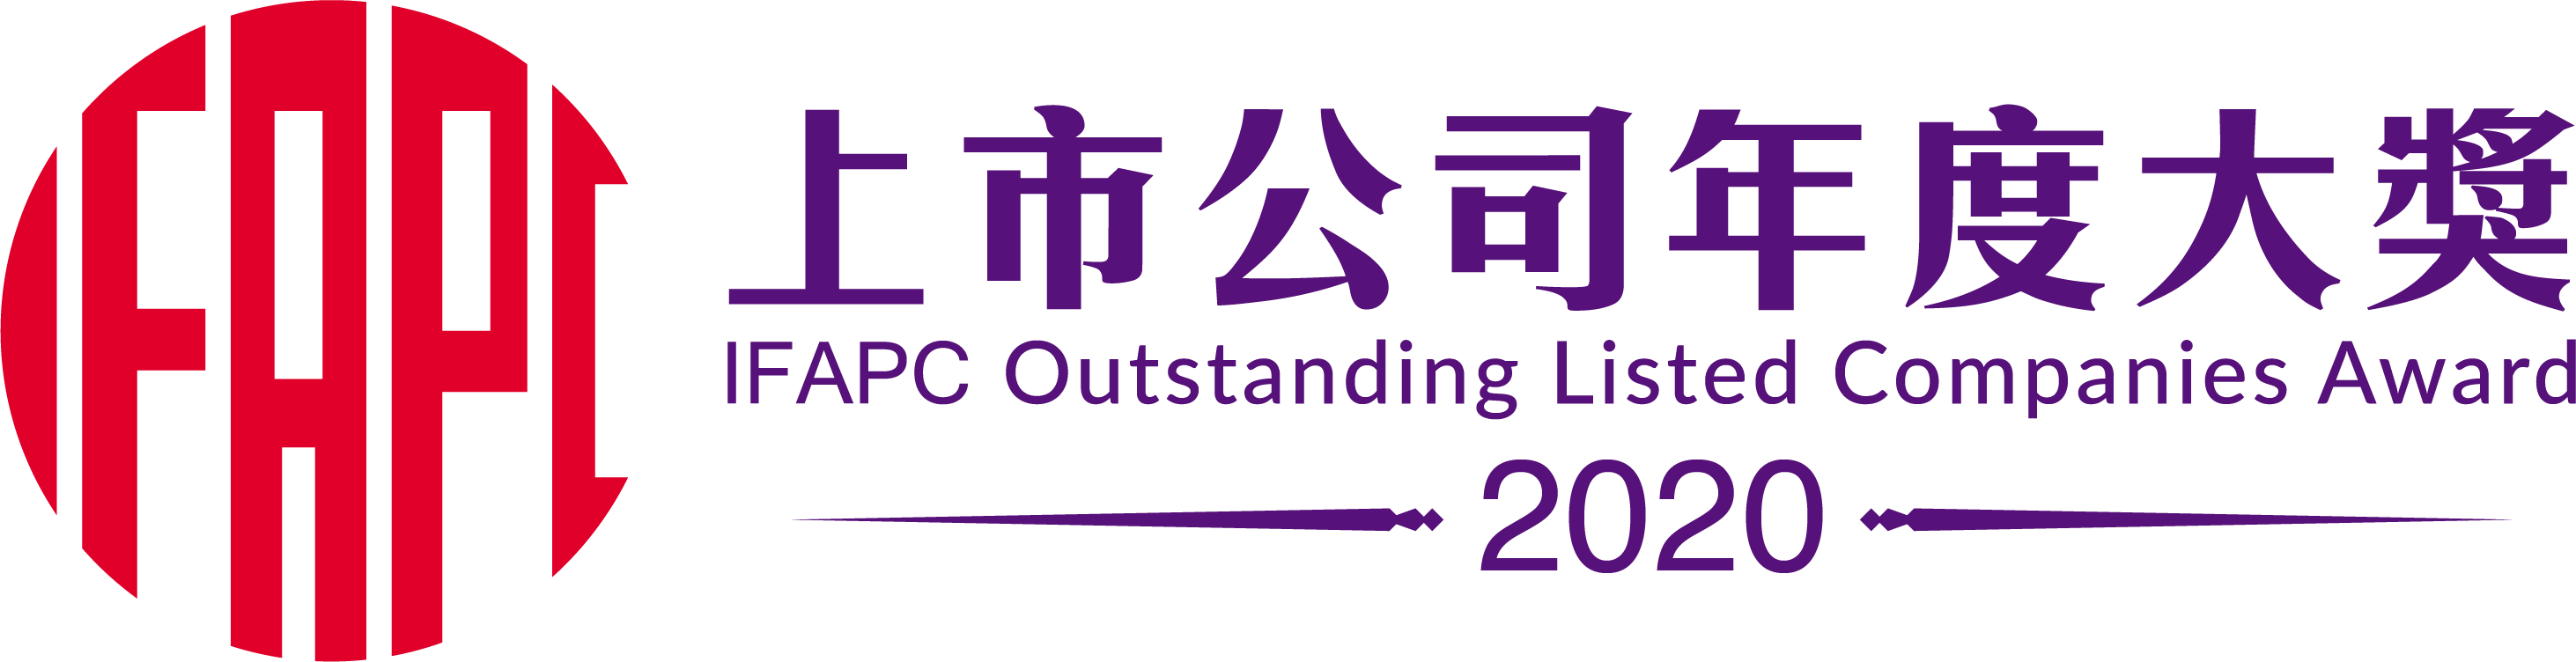 The Hong Kong Institute of Financial Analysts and Professional Commentators Limited